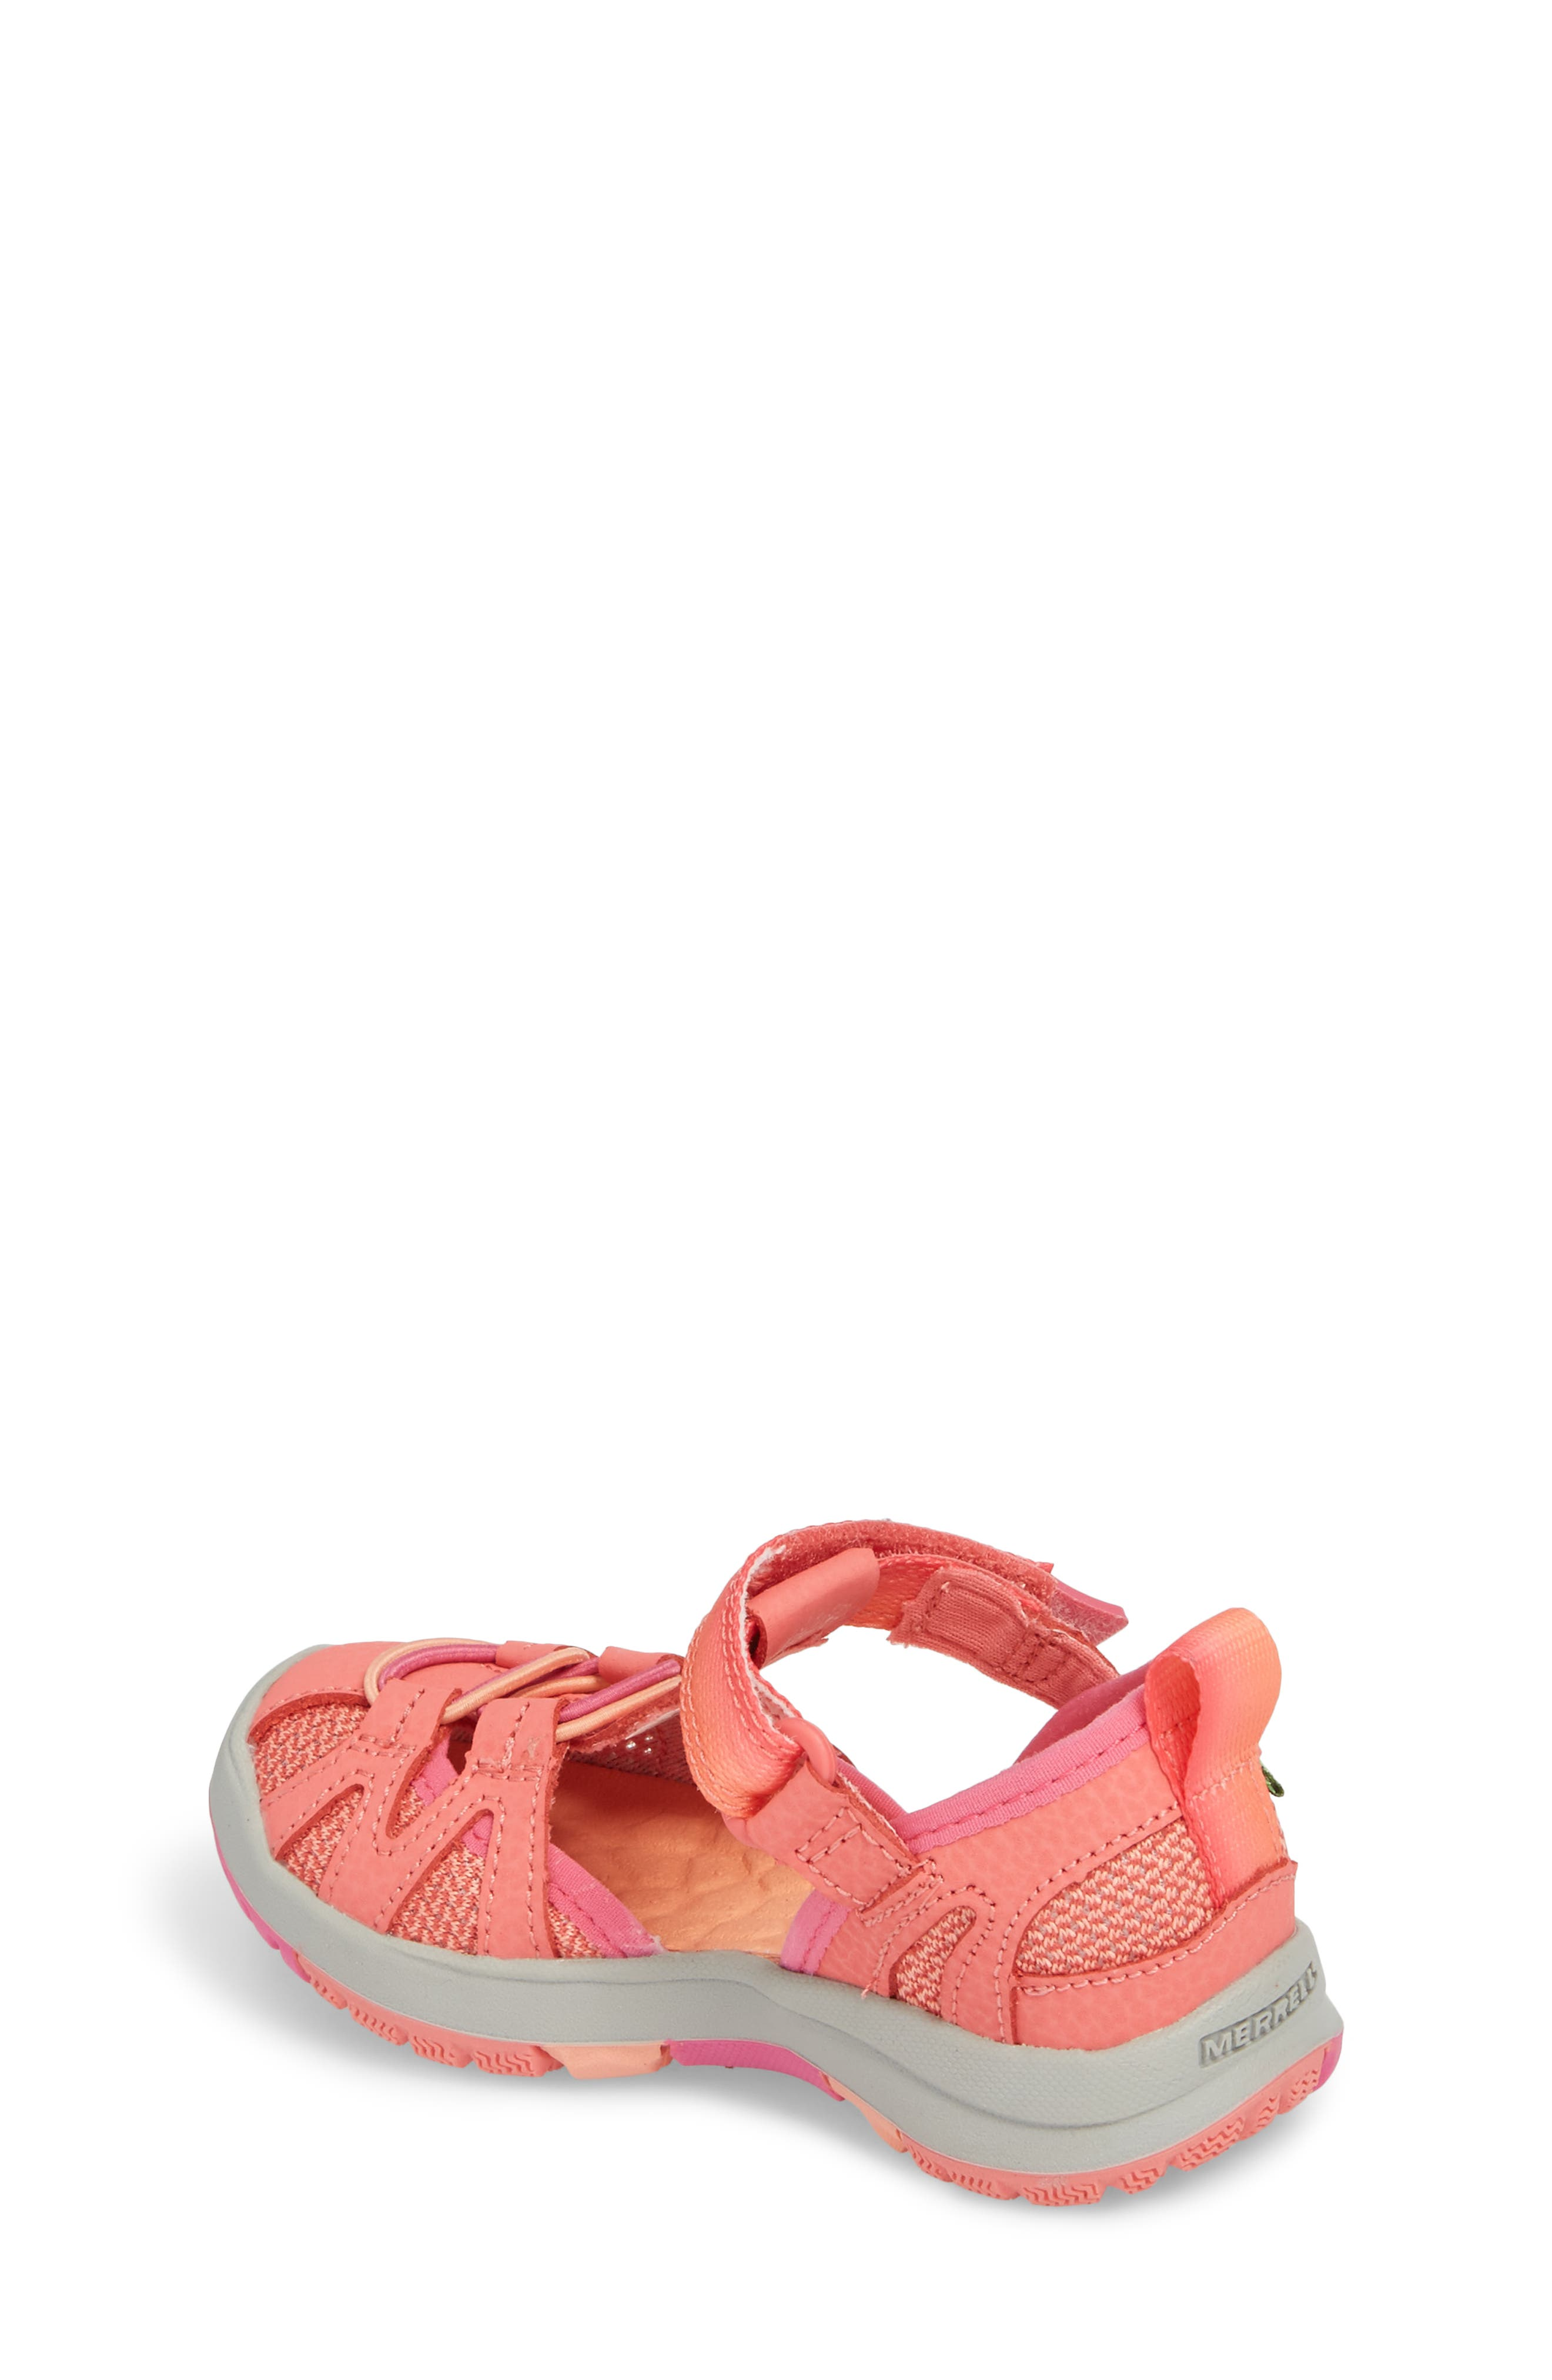 Alternate Image 2  - Merrell Hydro Monarch 2.0 Sandal (Walker, Toddler, Little Kid & Big Kid)